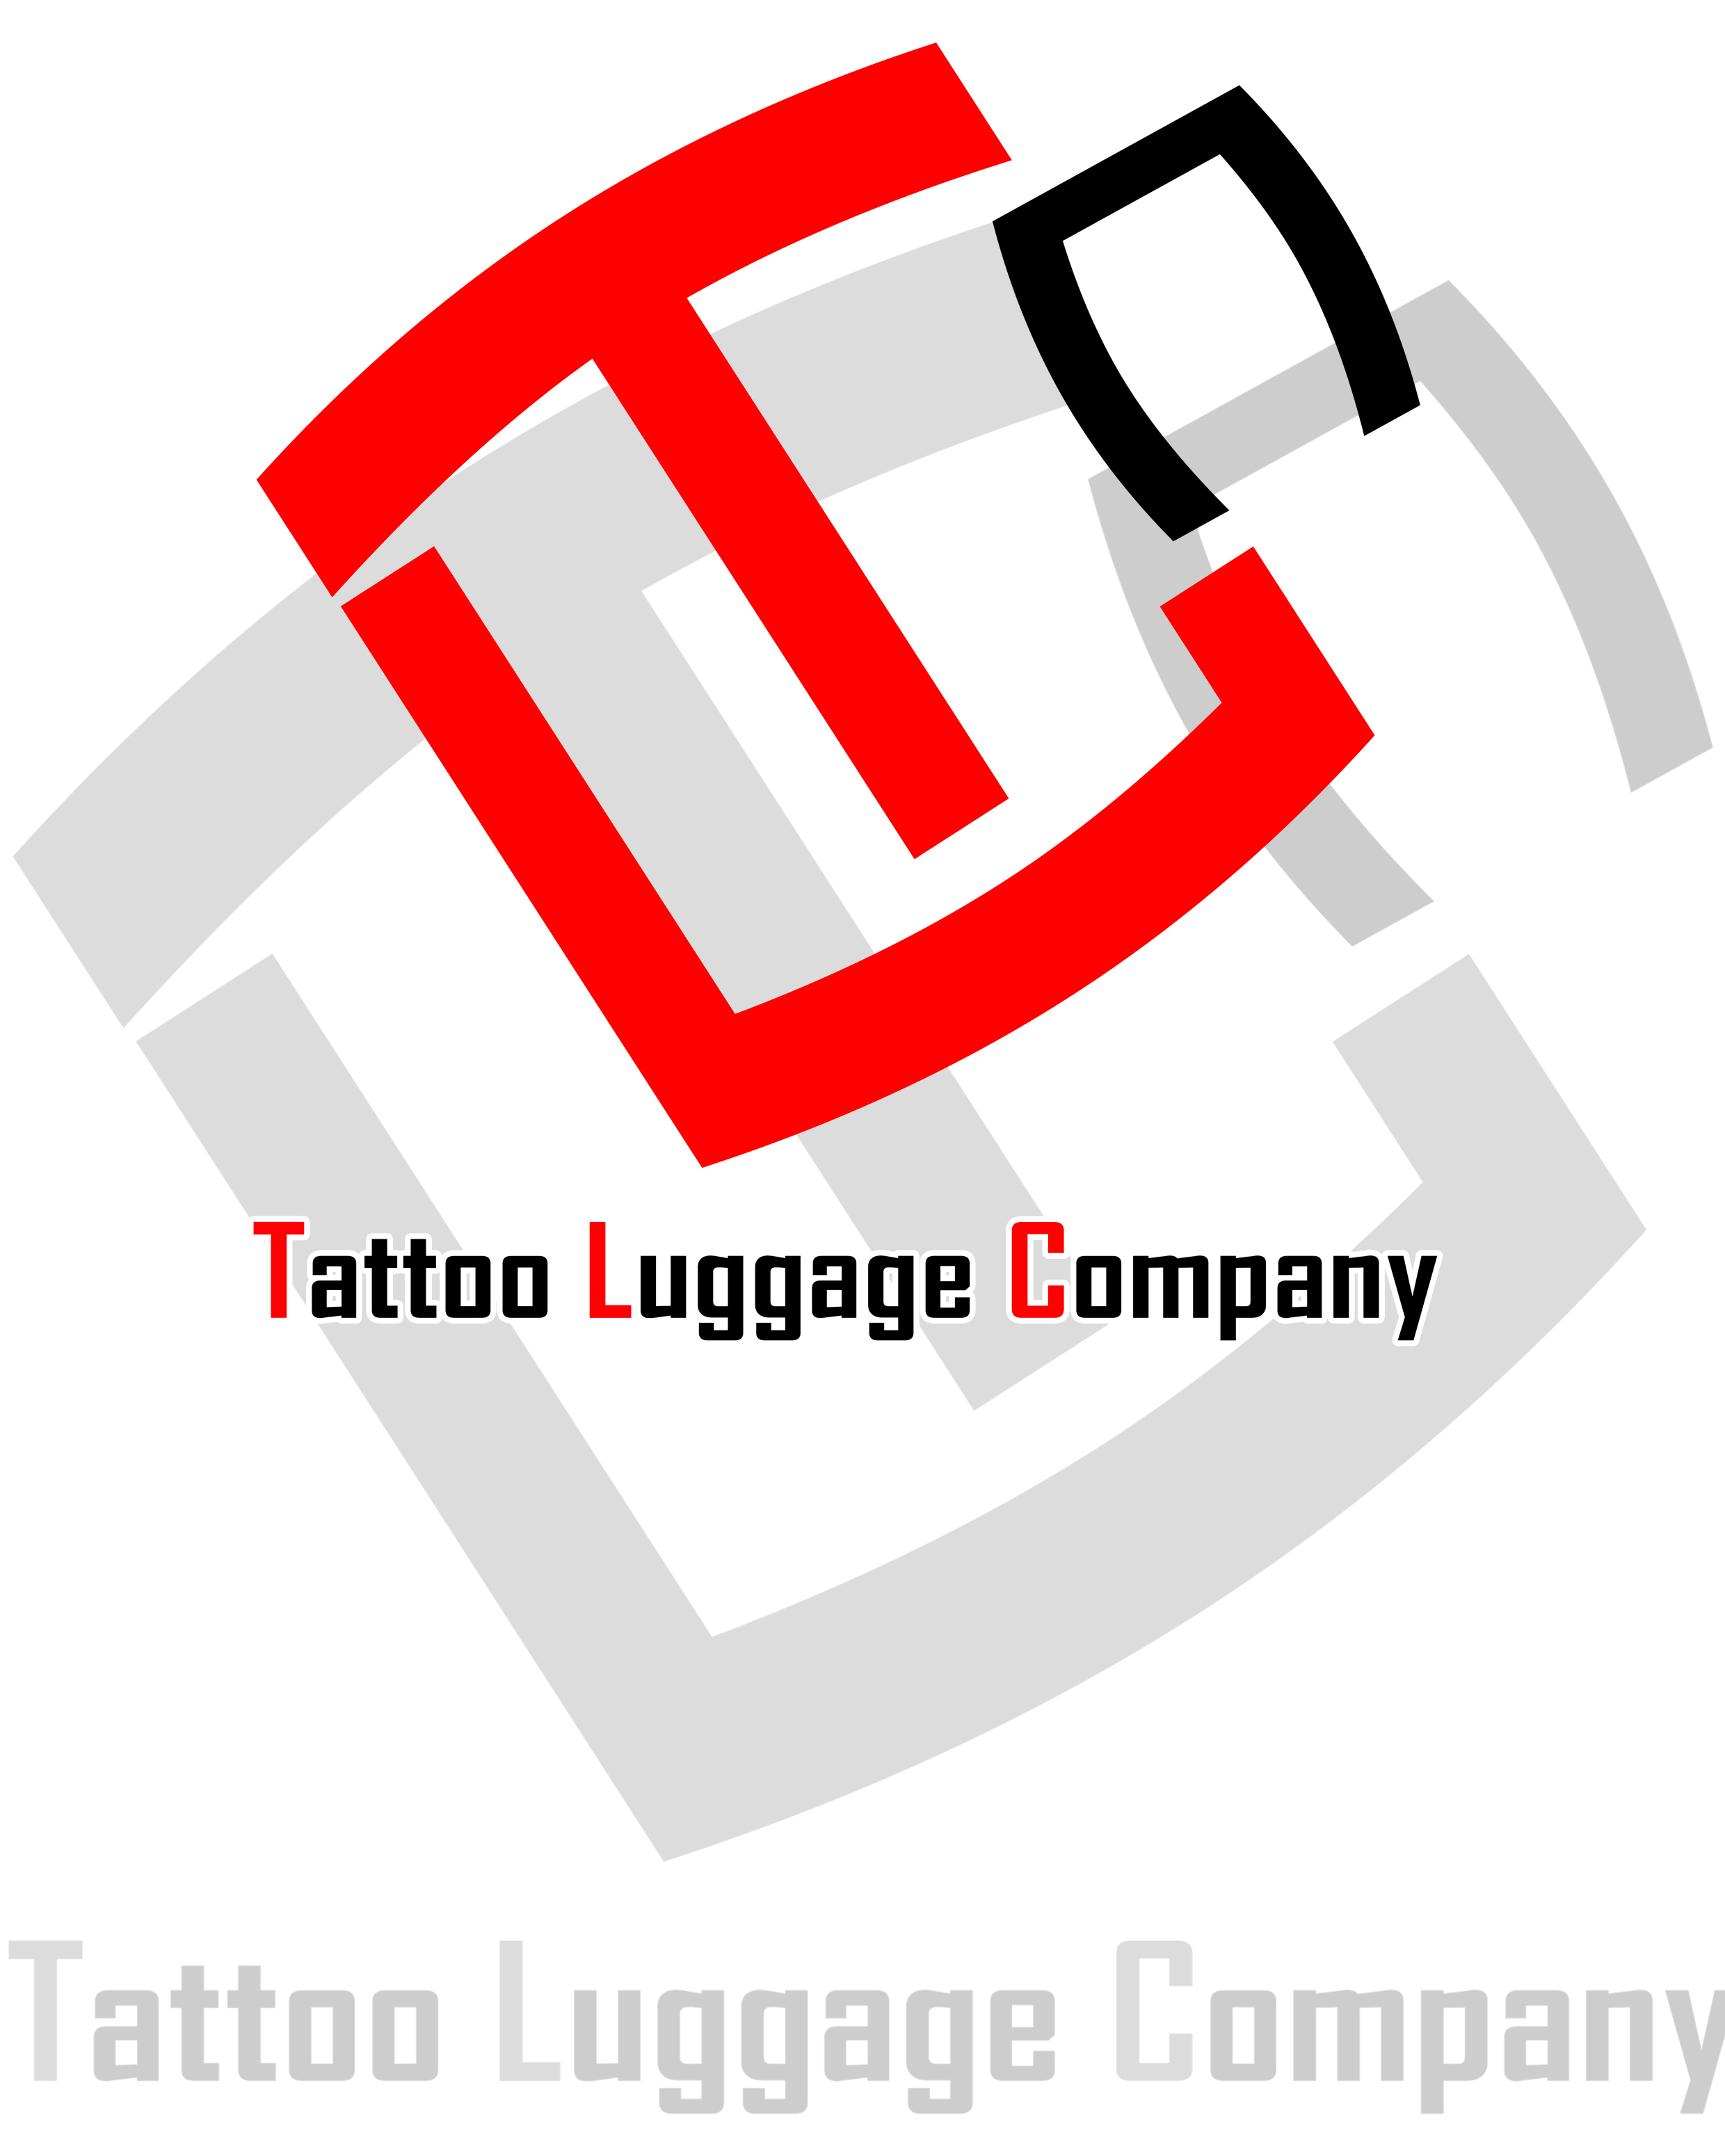 Logo Design by Earl Bangot - Entry No. 6 in the Logo Design Contest Artistic Logo Design for Tattoo Luggage Company.